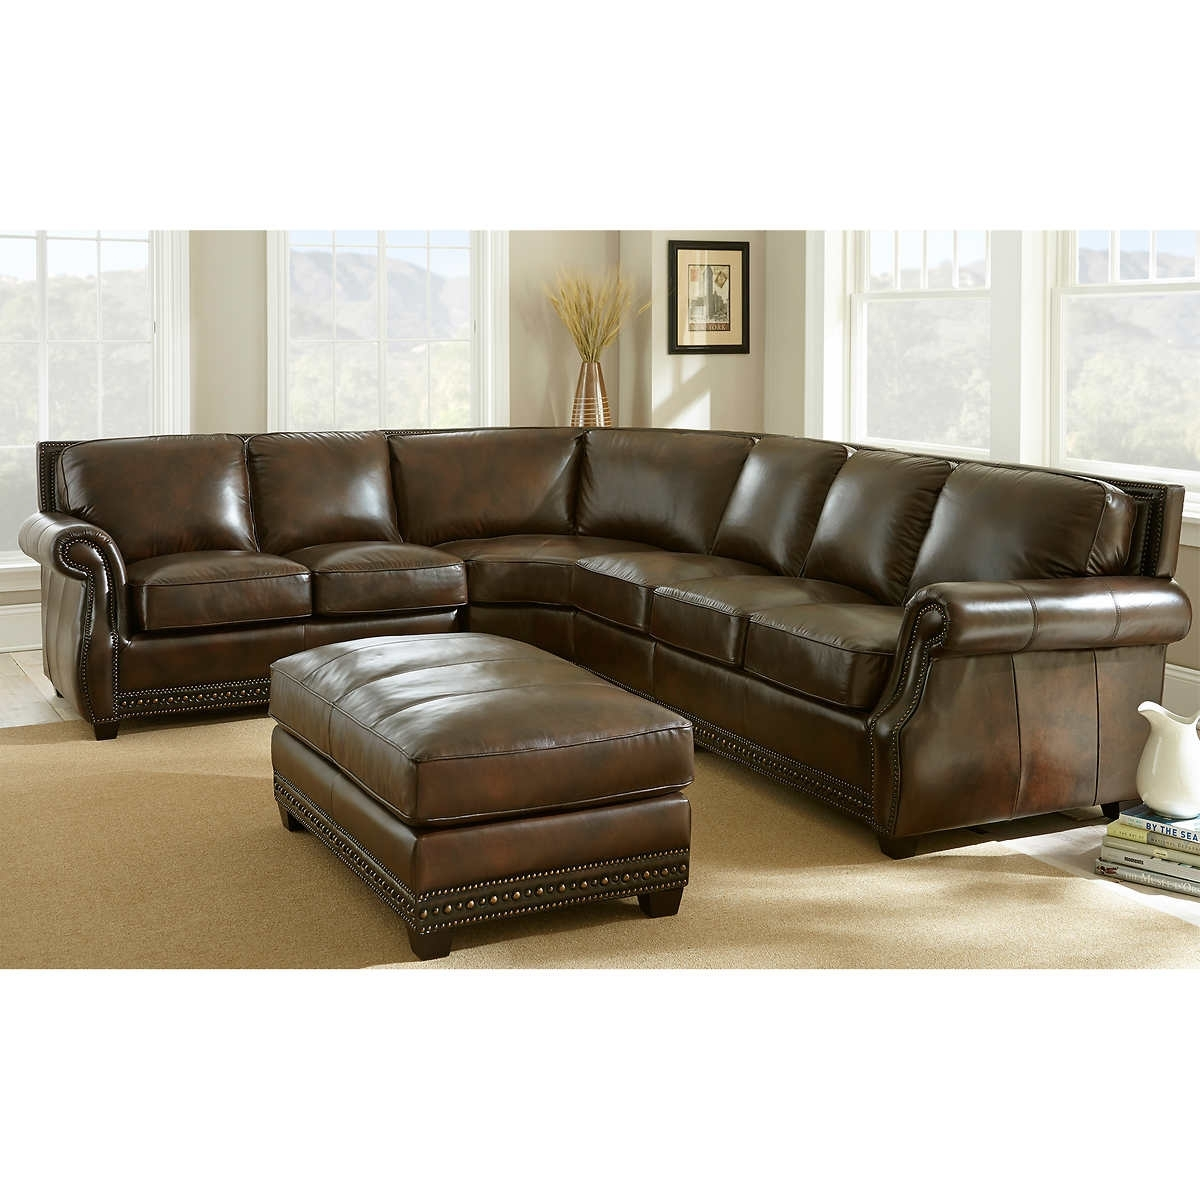 Fancy Leather Sectional Sofa With Recliner 30 On Sofas And Couches With Regard To Leather Sectional Sofas (View 4 of 10)